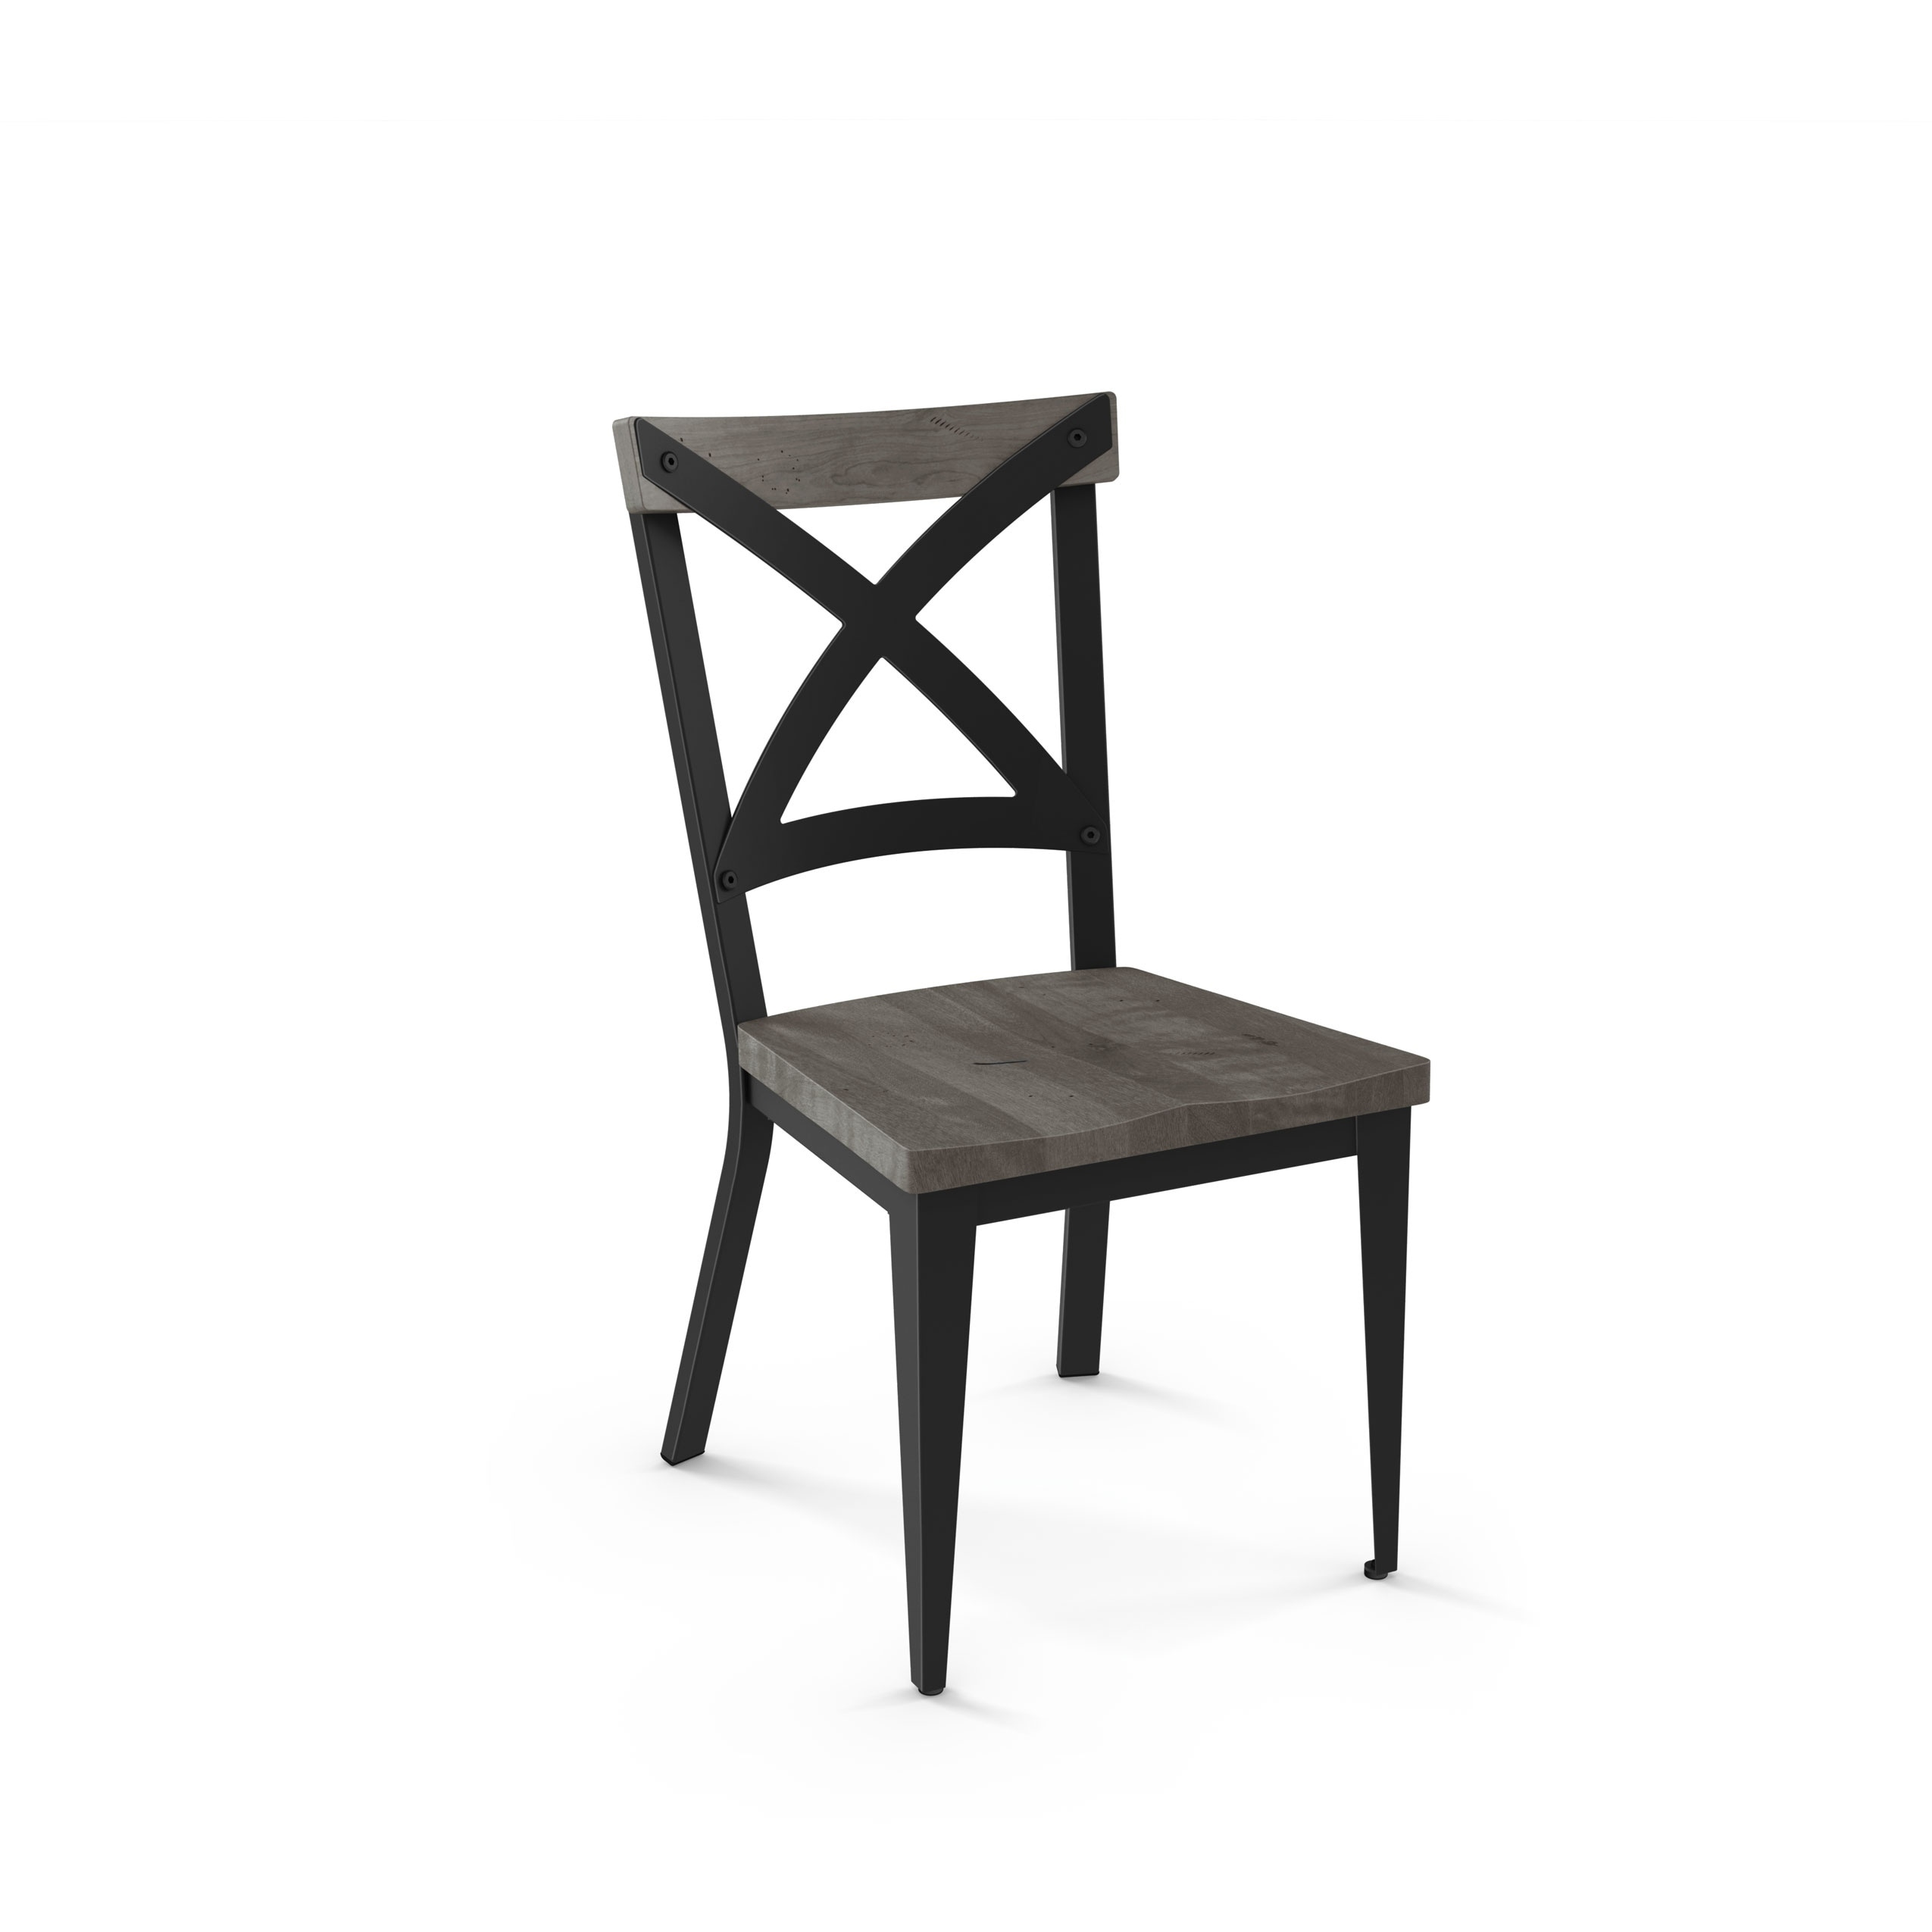 Charmant Shop Carbon Loft Prescoft Metal Chair With Wood Seat   Free Shipping Today    Overstock.com   20306637